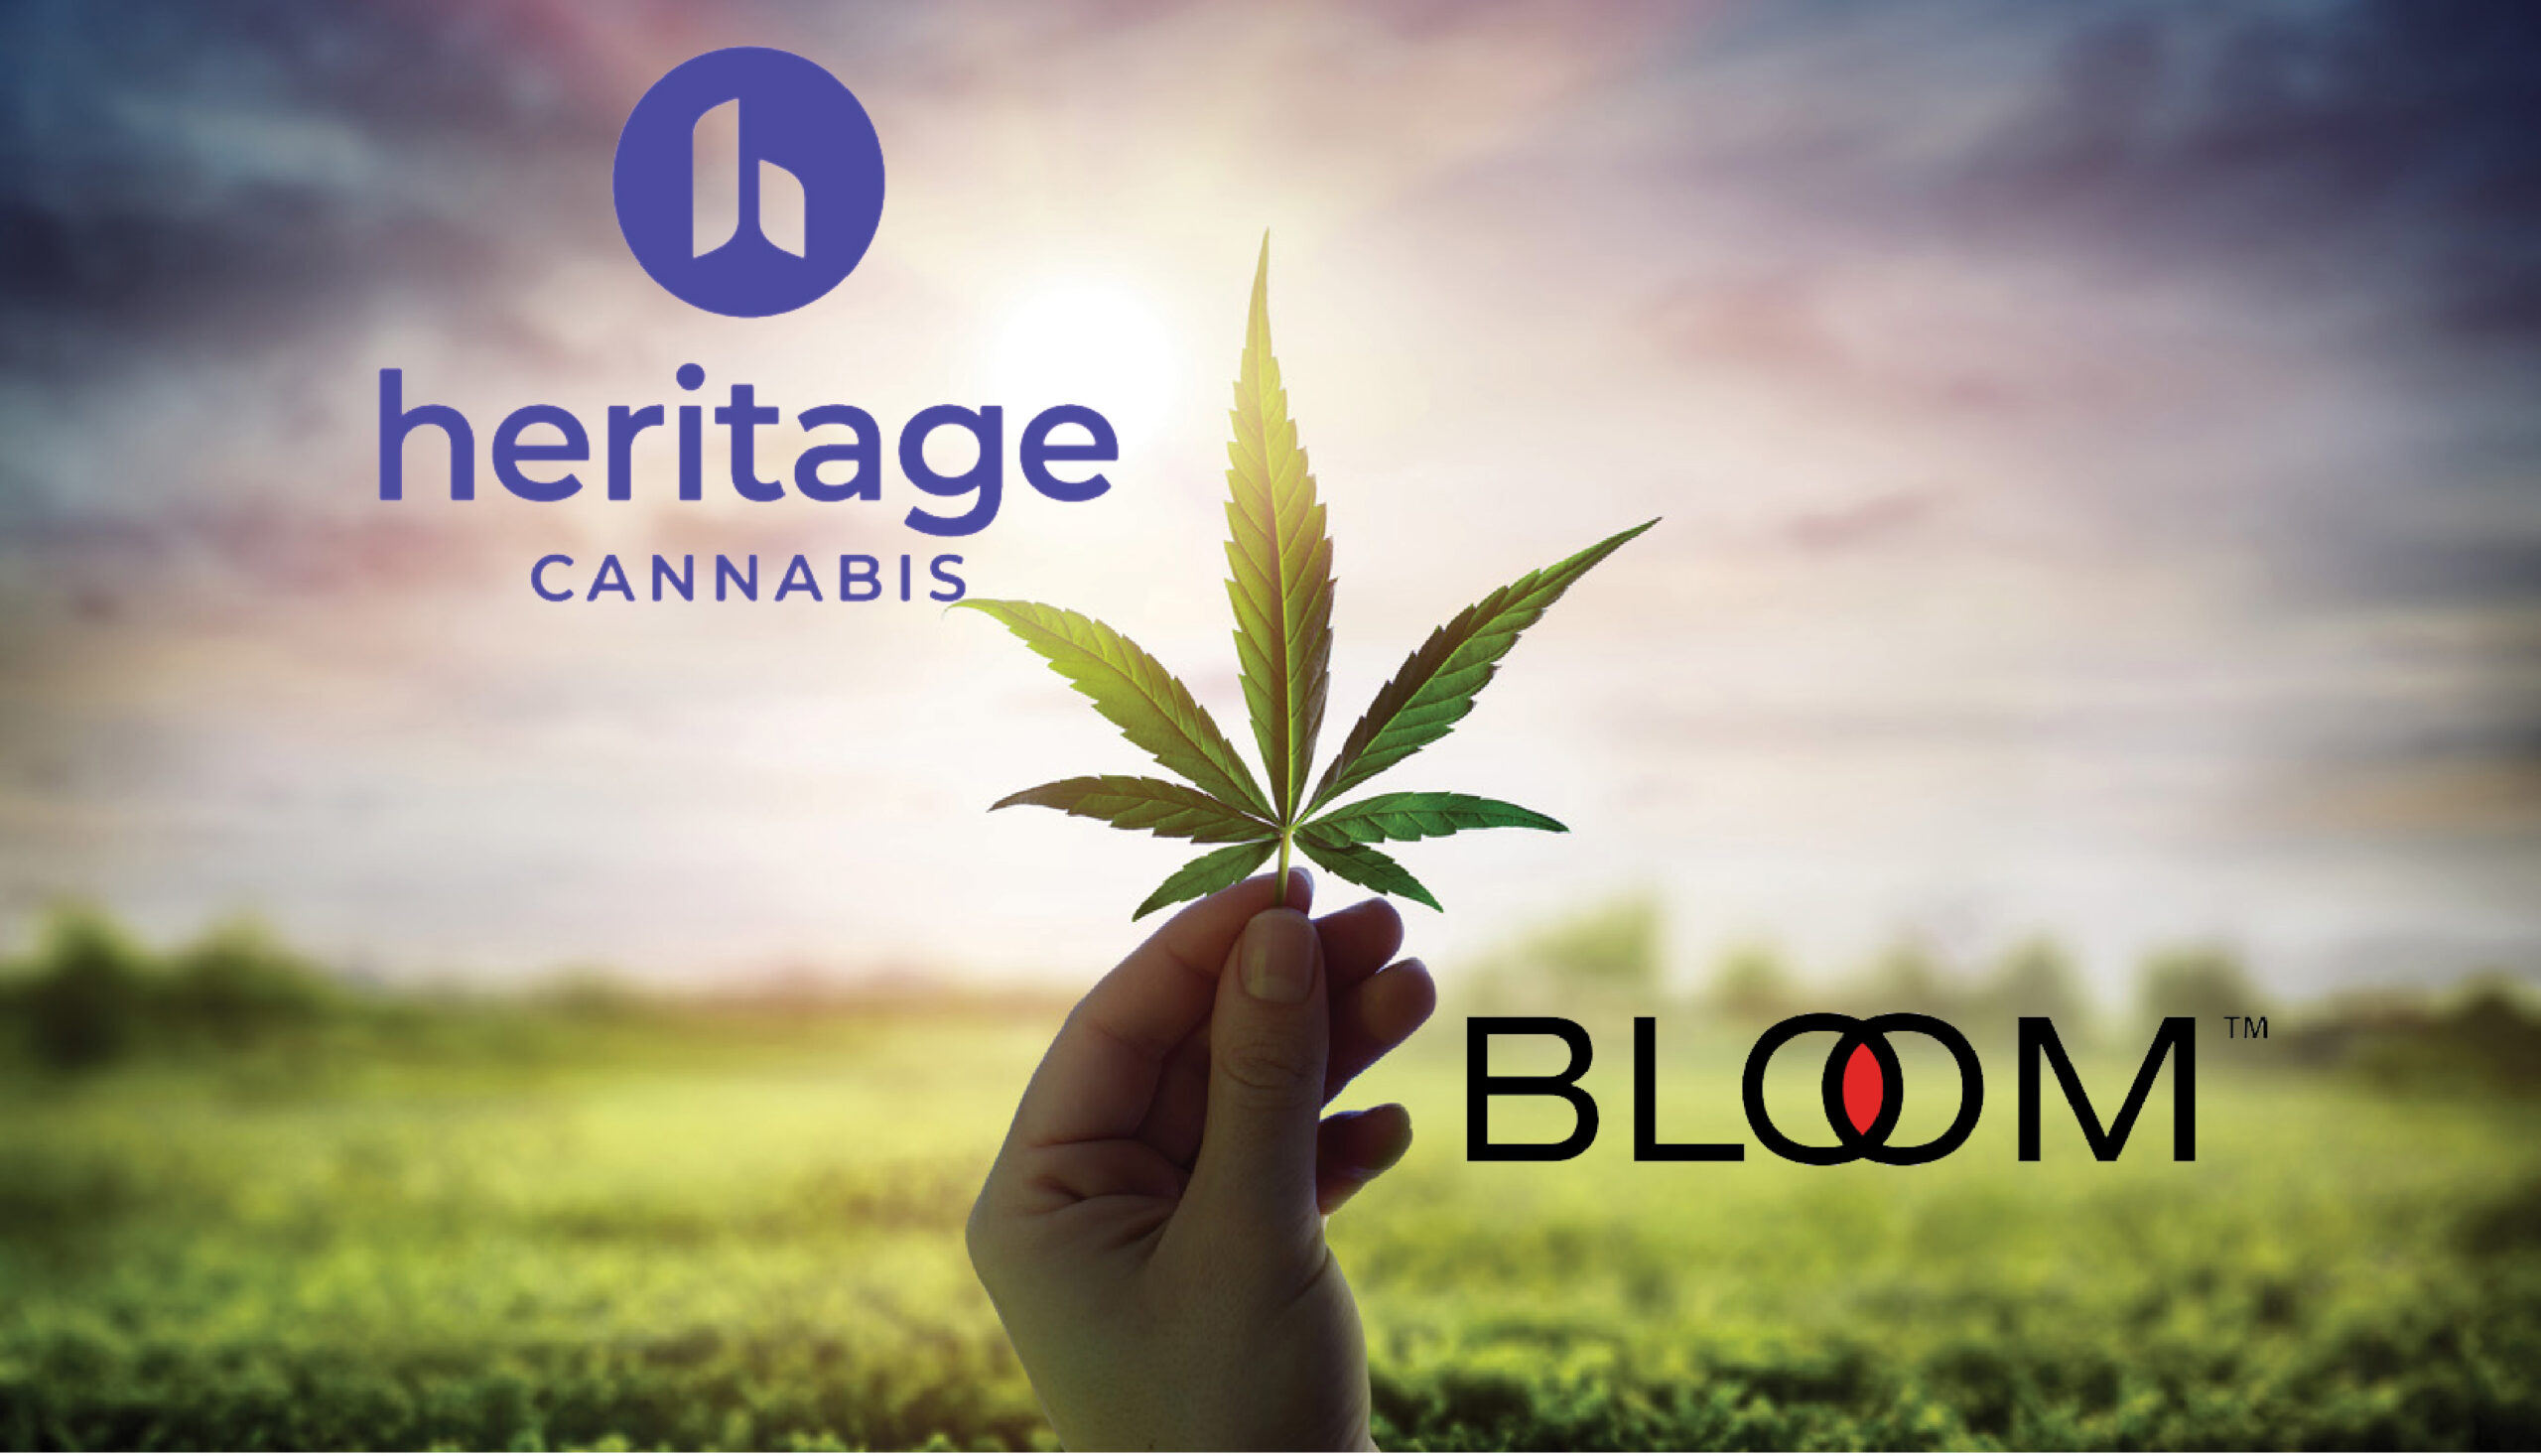 Heritage Cannabis acquires recreational cannabis group Bloom Brands